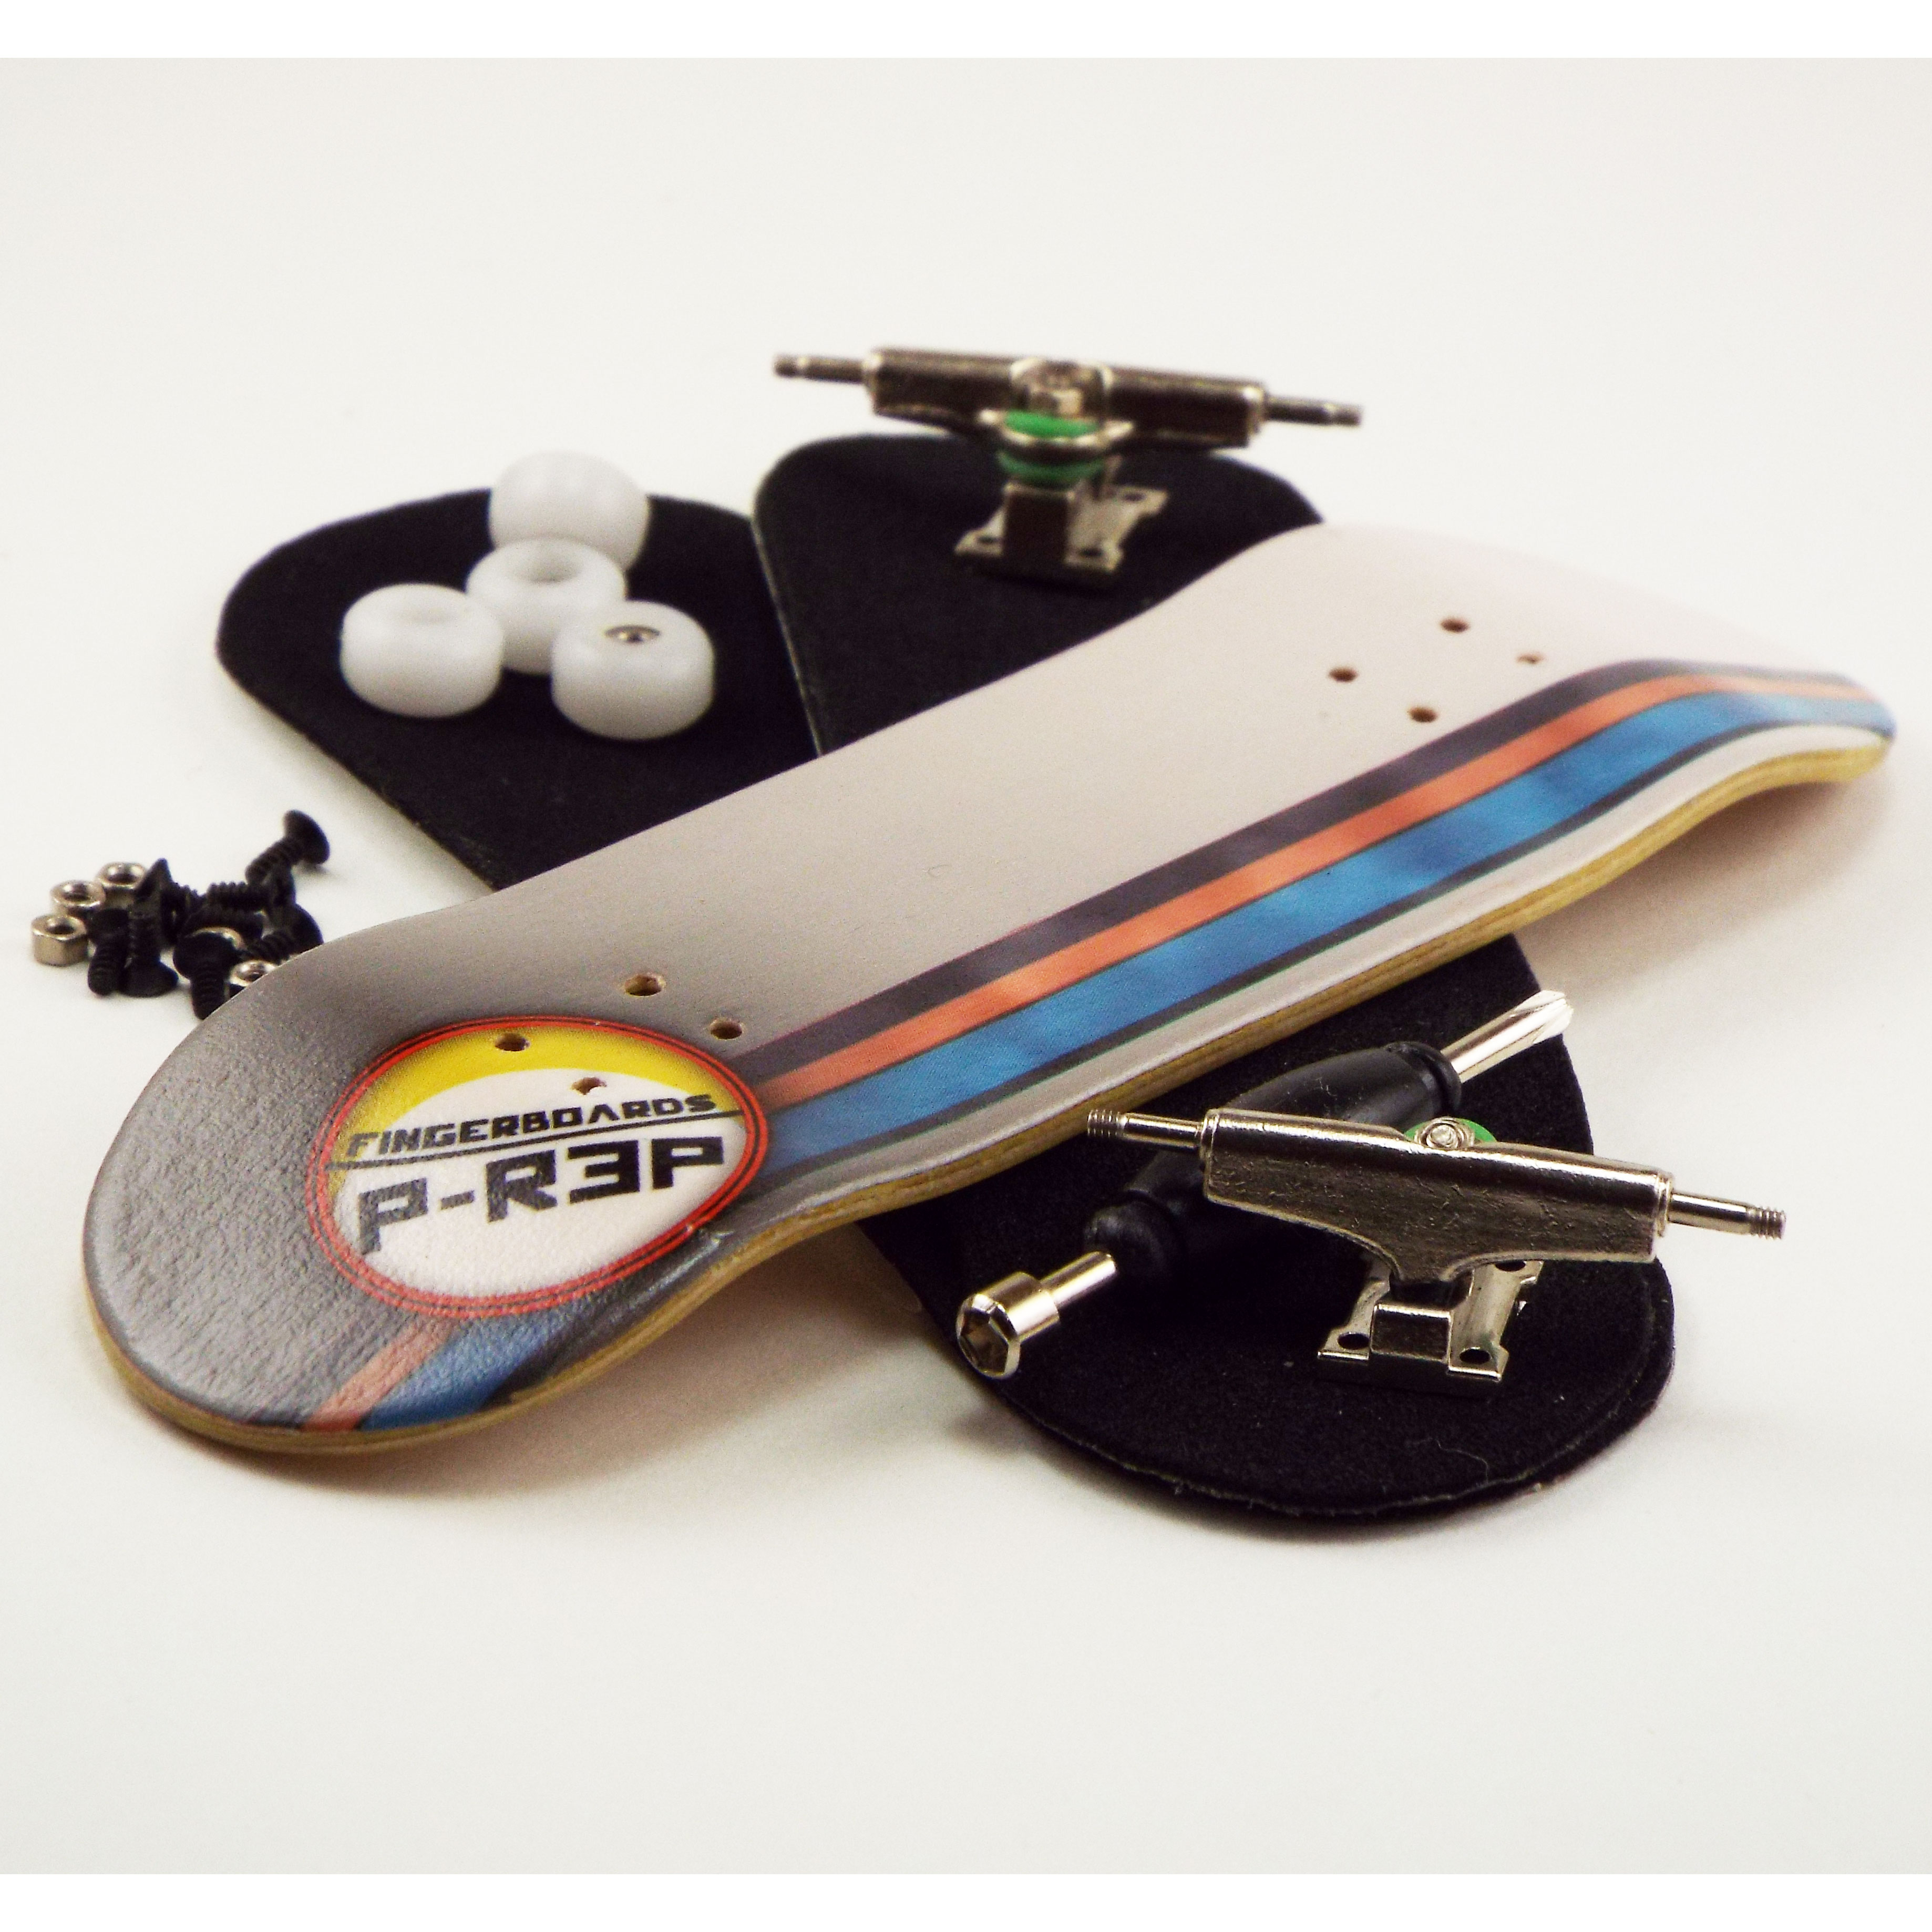 P Rep GT 30Mm Graphic Complete Wooden Fingerboard W CNC Lathed Bearing Wheels